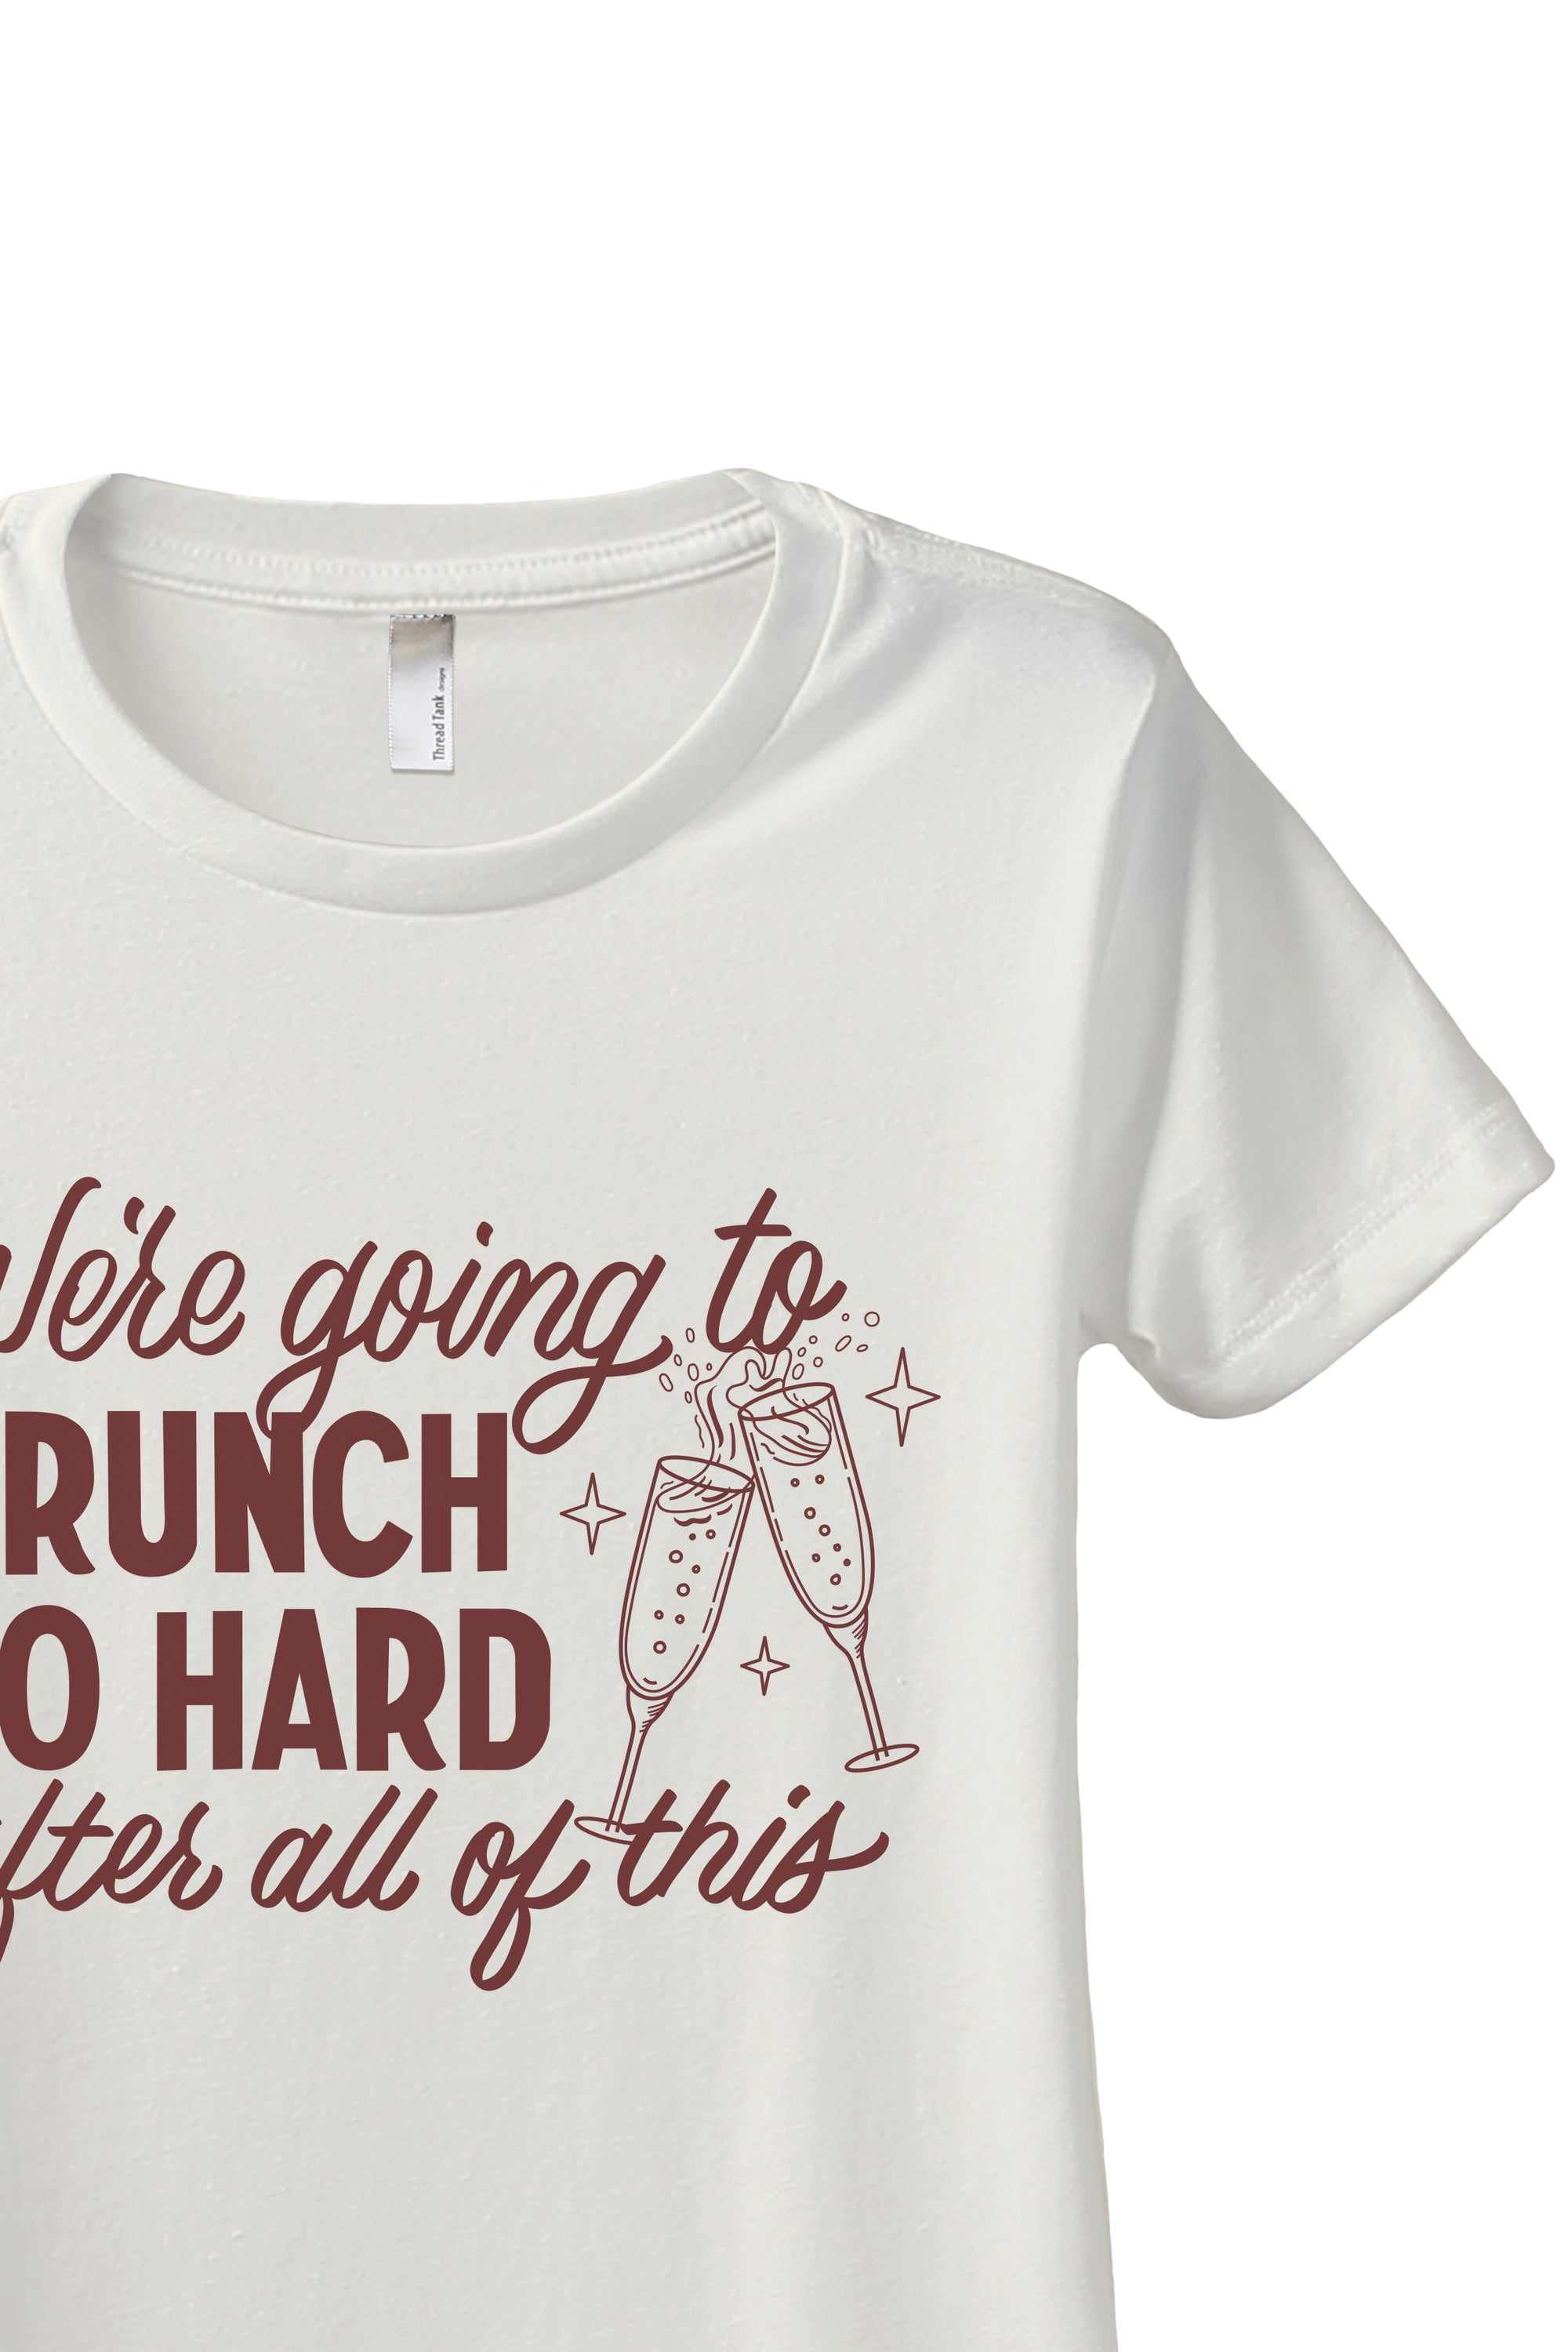 We're Going To Brunch So Hard After All Of This Women's Relaxed Crewneck T-Shirt Top Tee Vintage White